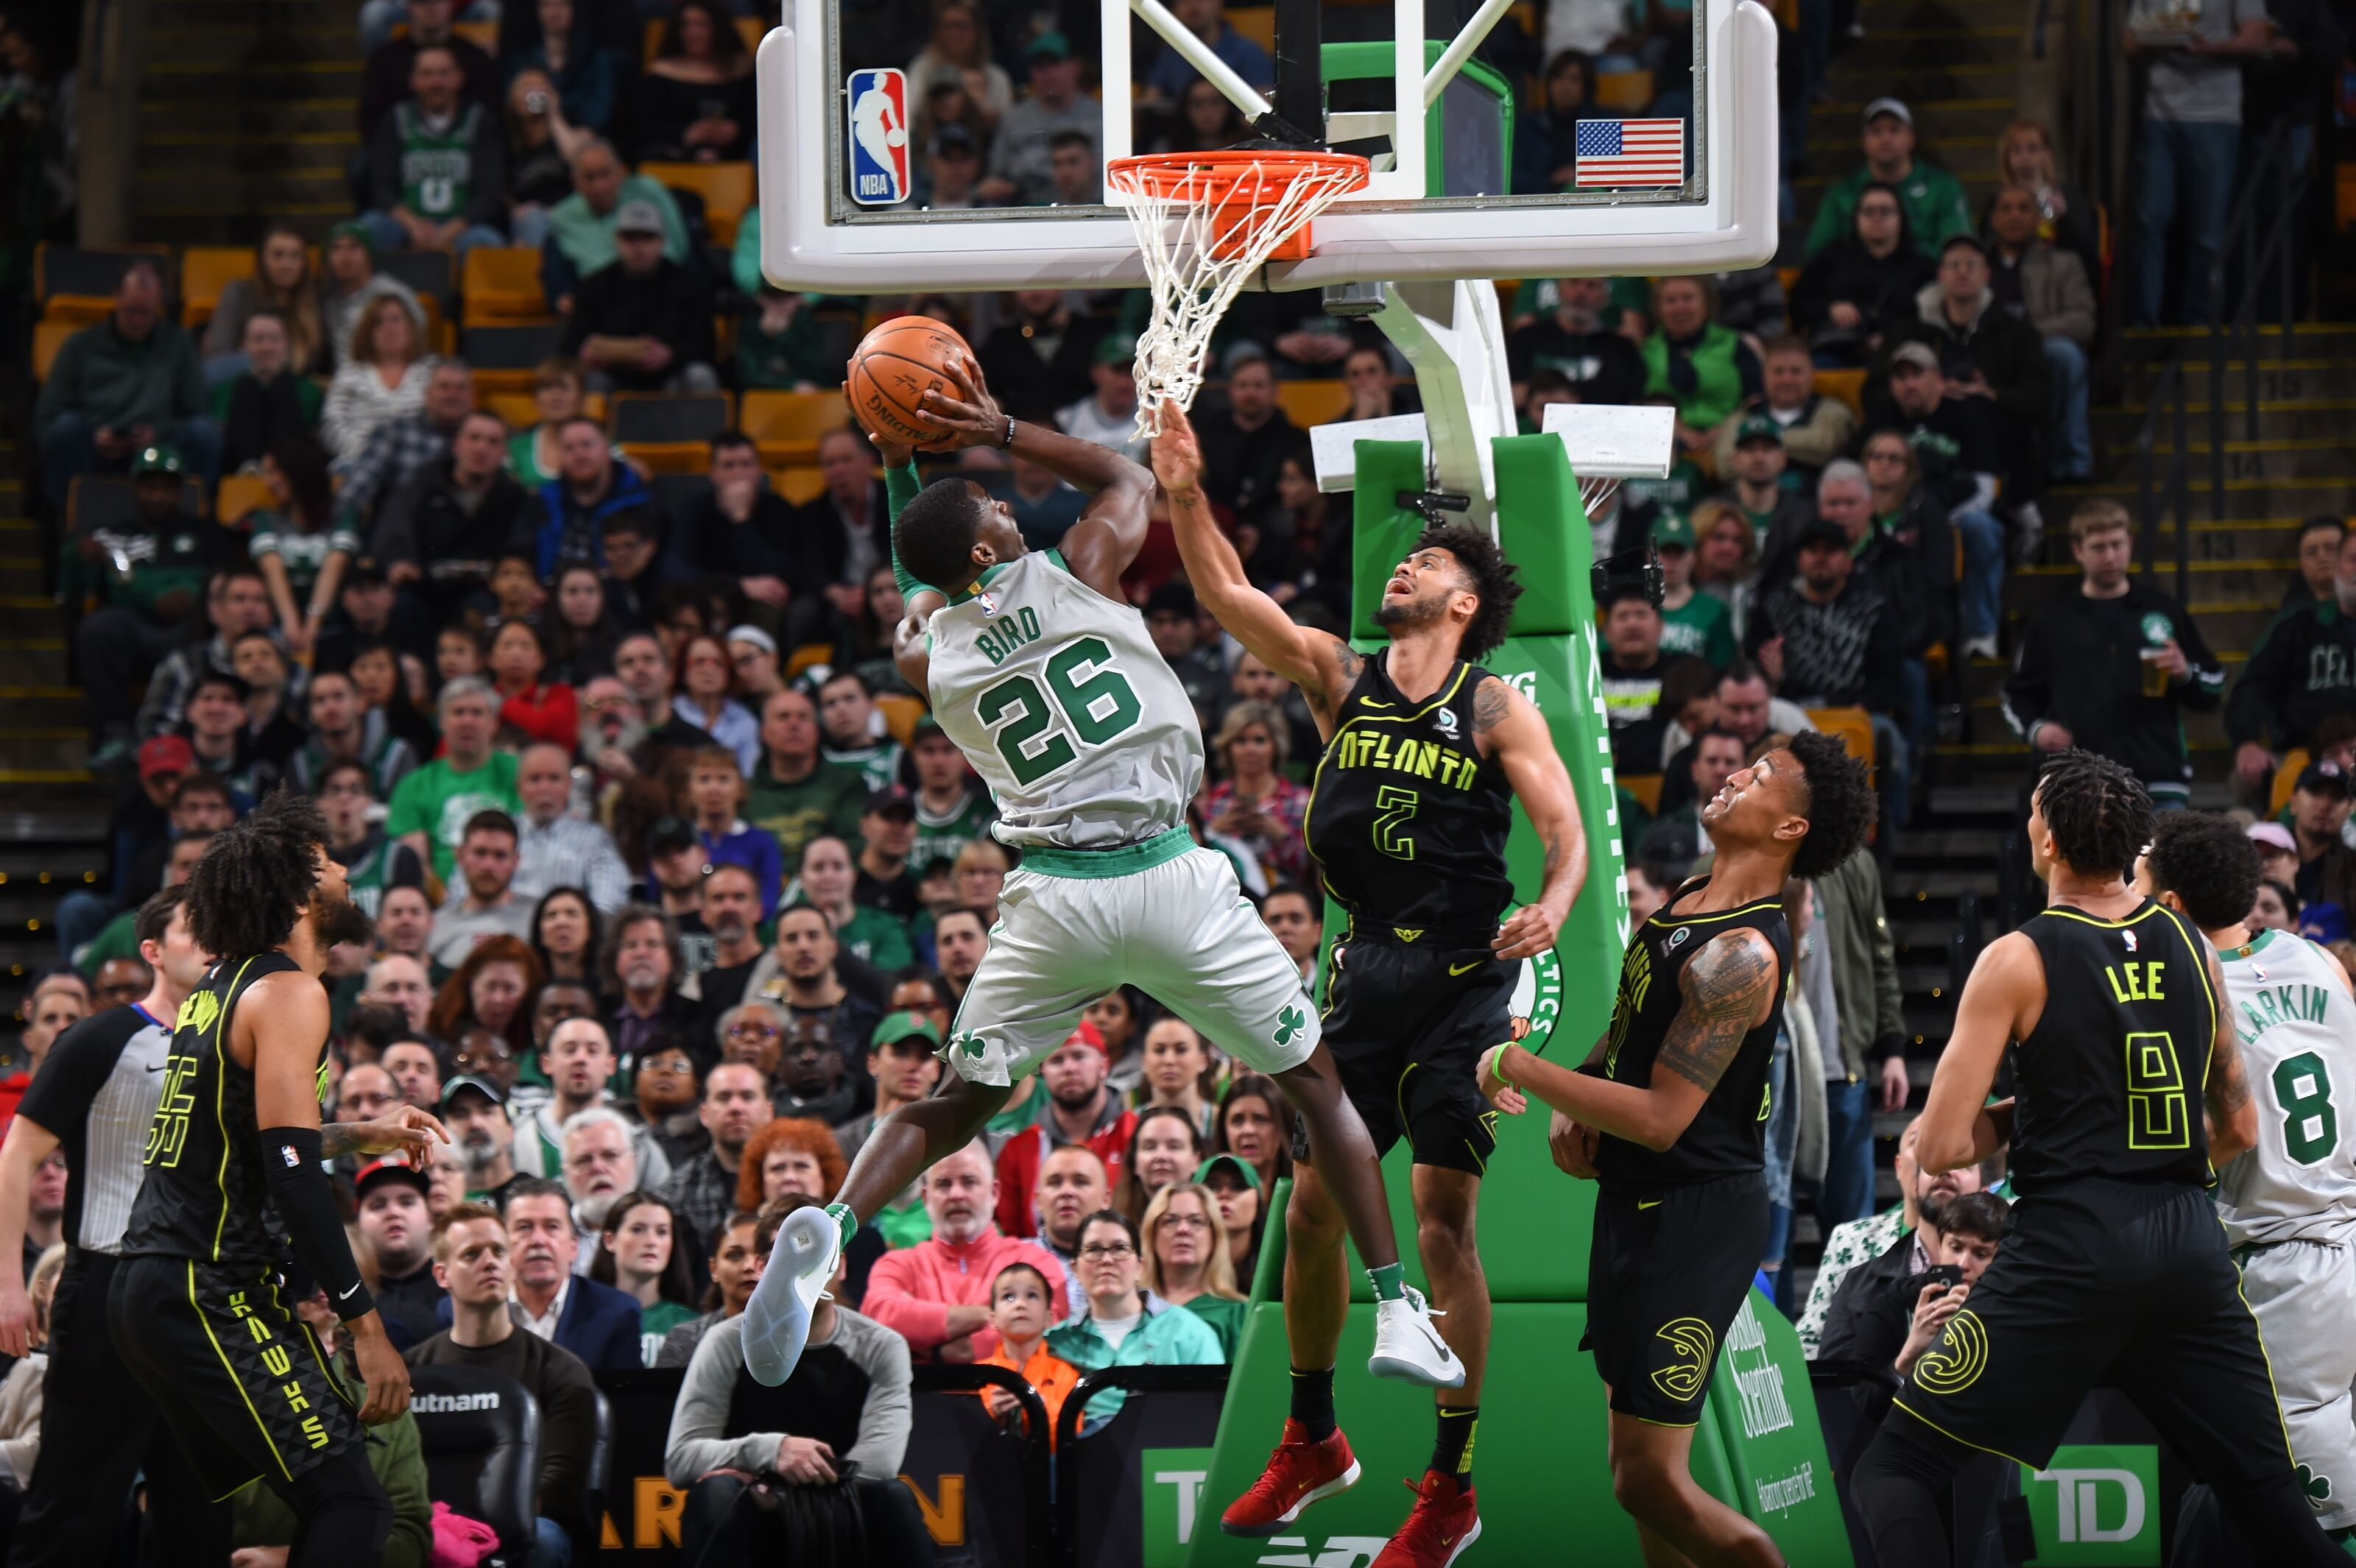 943426454-atlanta-hawks-v-boston-celtics.jpg